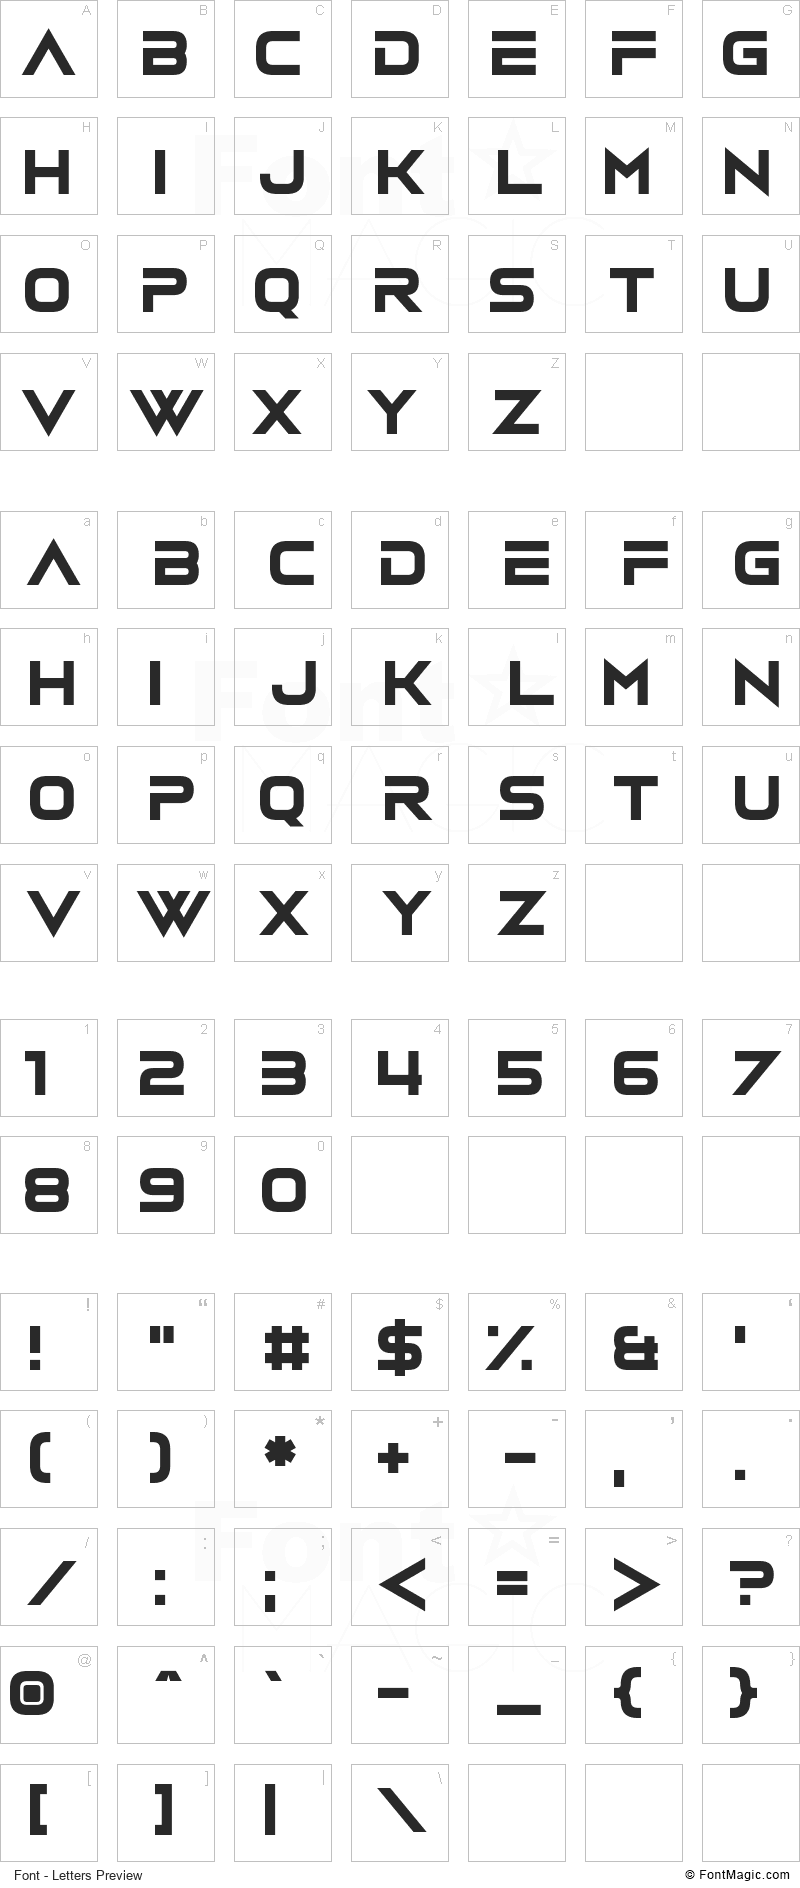 Vudotronic Font - All Latters Preview Chart